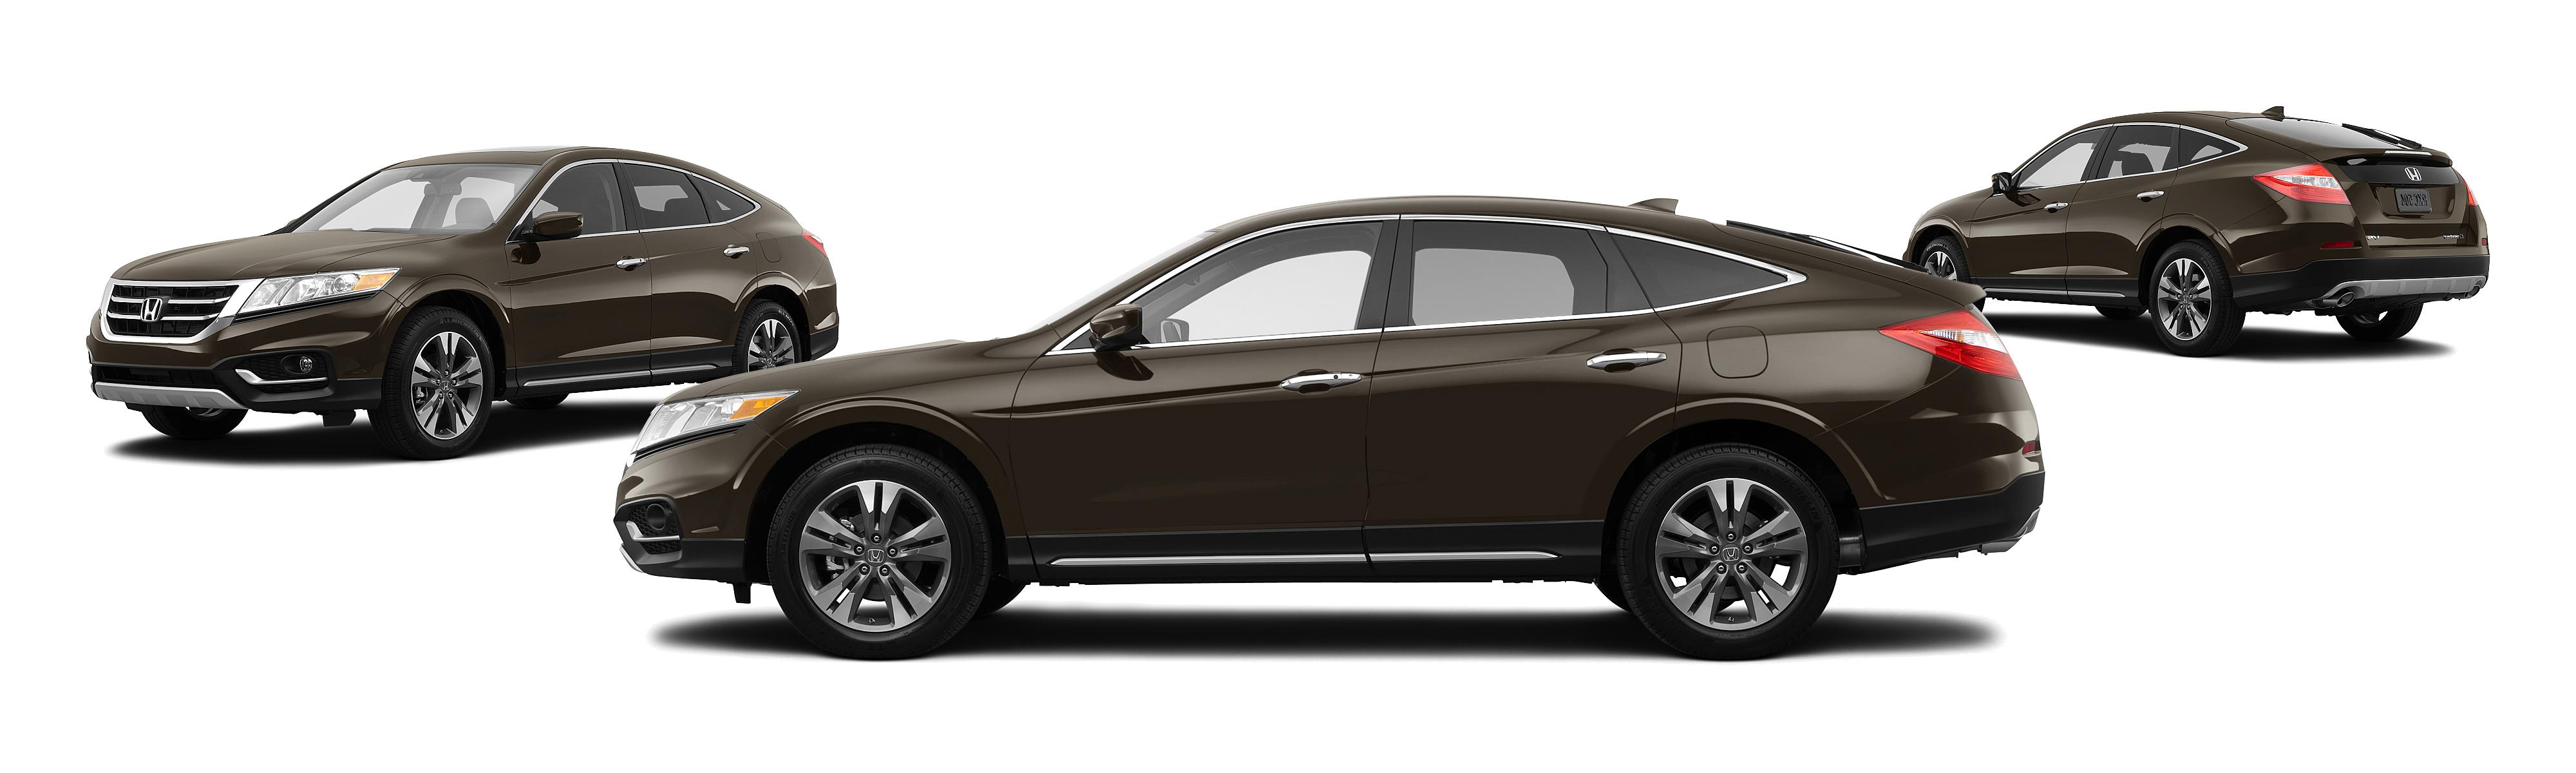 msrp and levels trim the honda crosstour